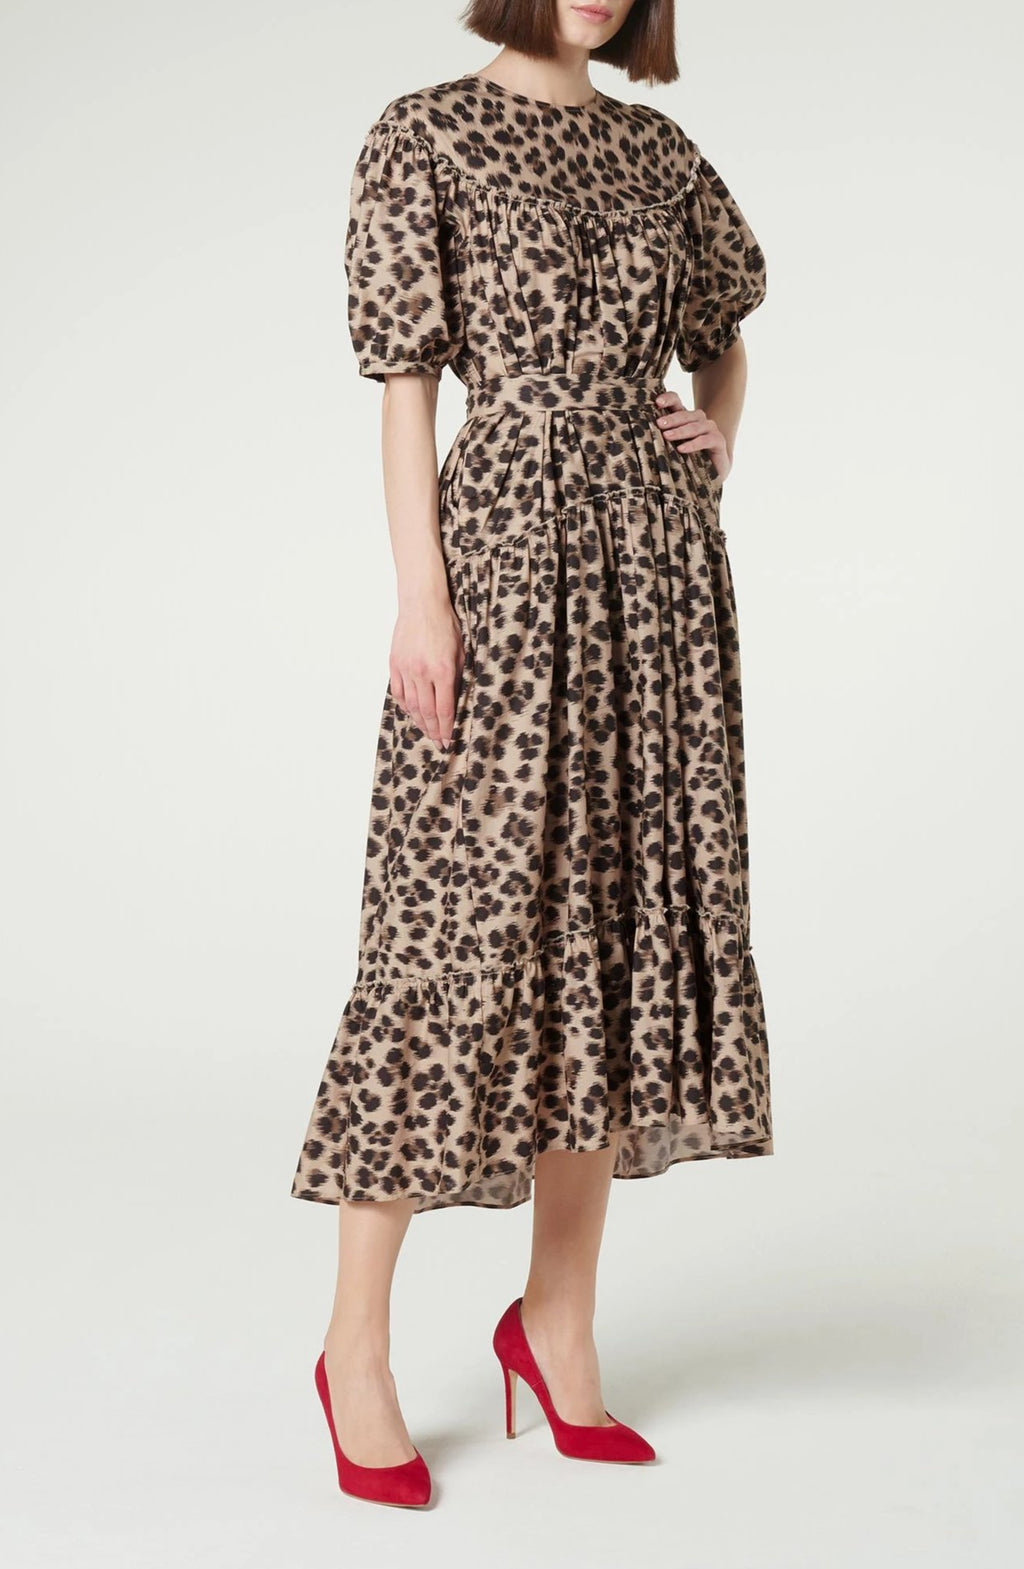 LK Bennett Leopard Print Cotton Smock Dress